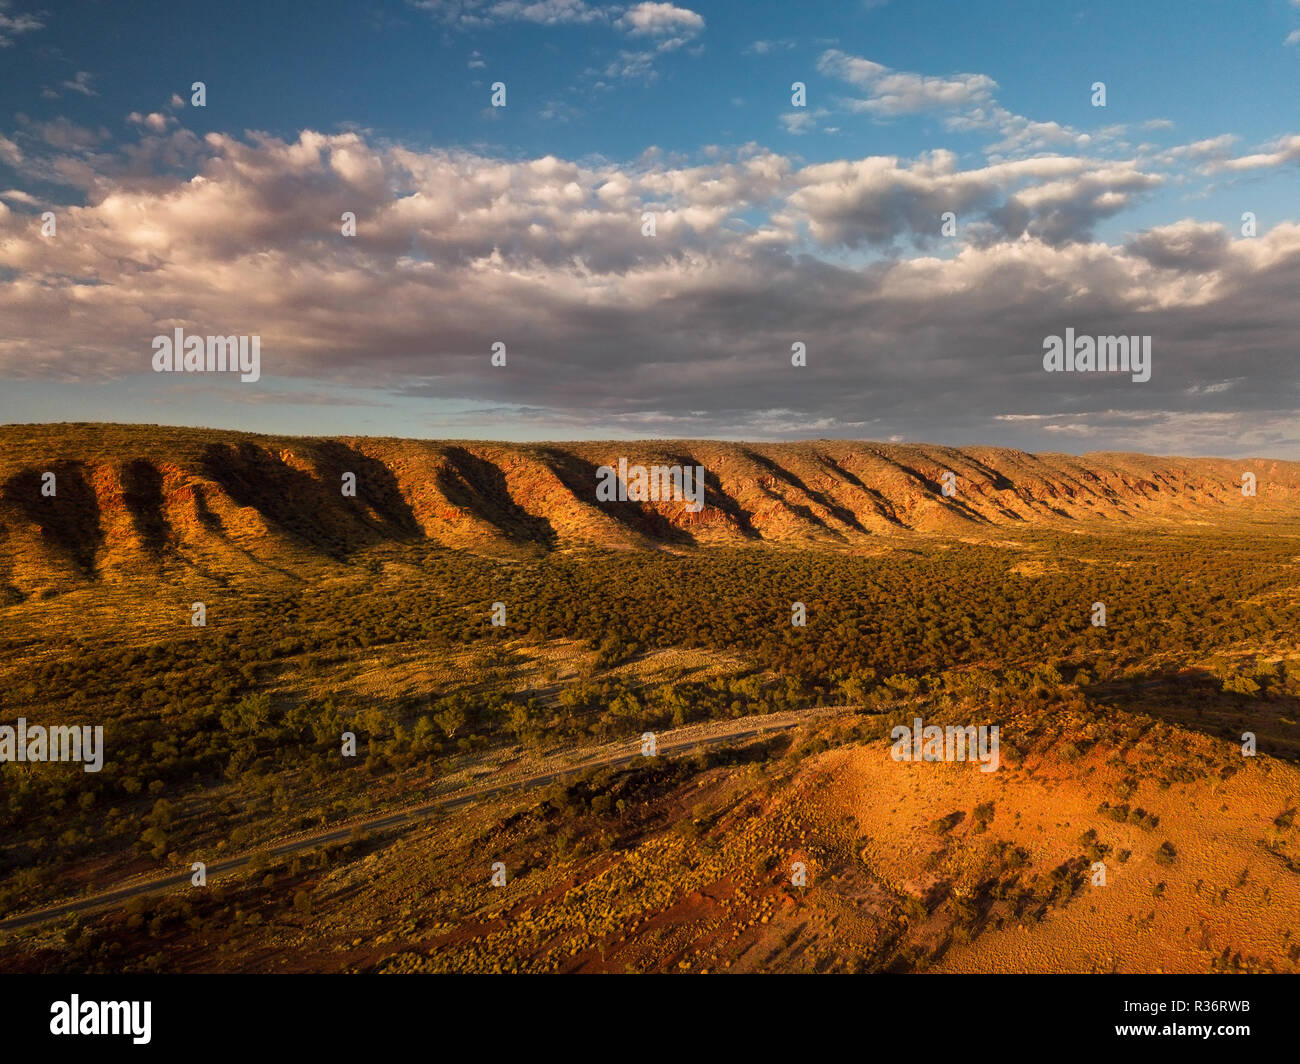 Aerial shot of the MacDonnell Ranges with the famous Namatijira Drive. - Stock Image